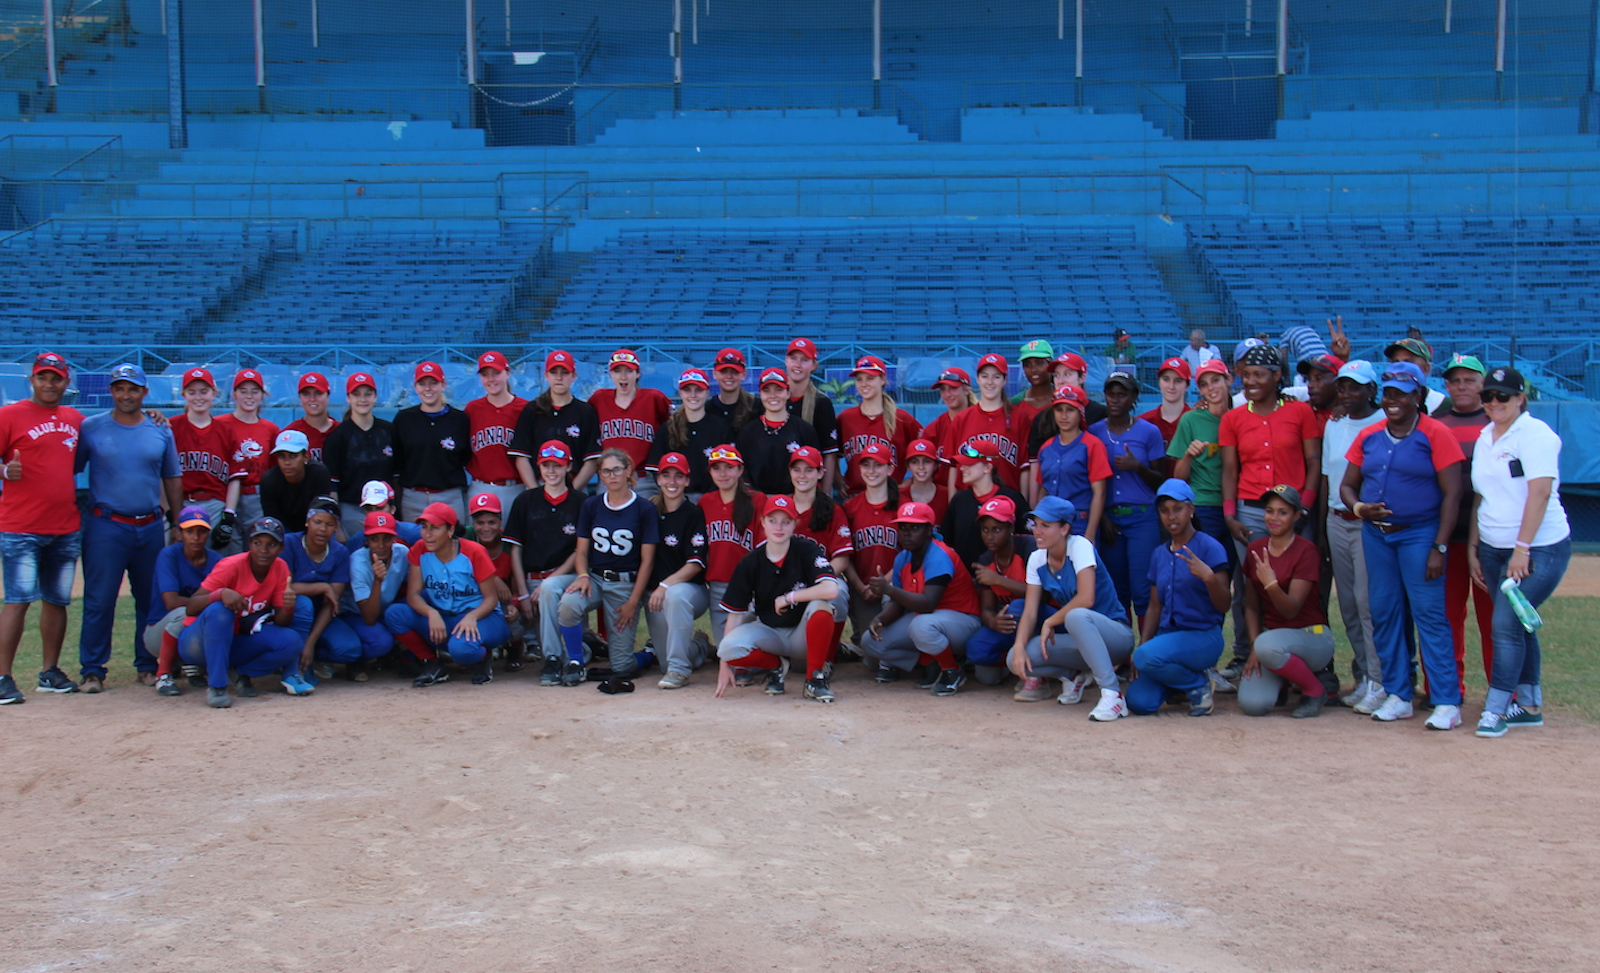 REGISTER TODAY: 2019 Girls Baseball Development Camp in Cuba!